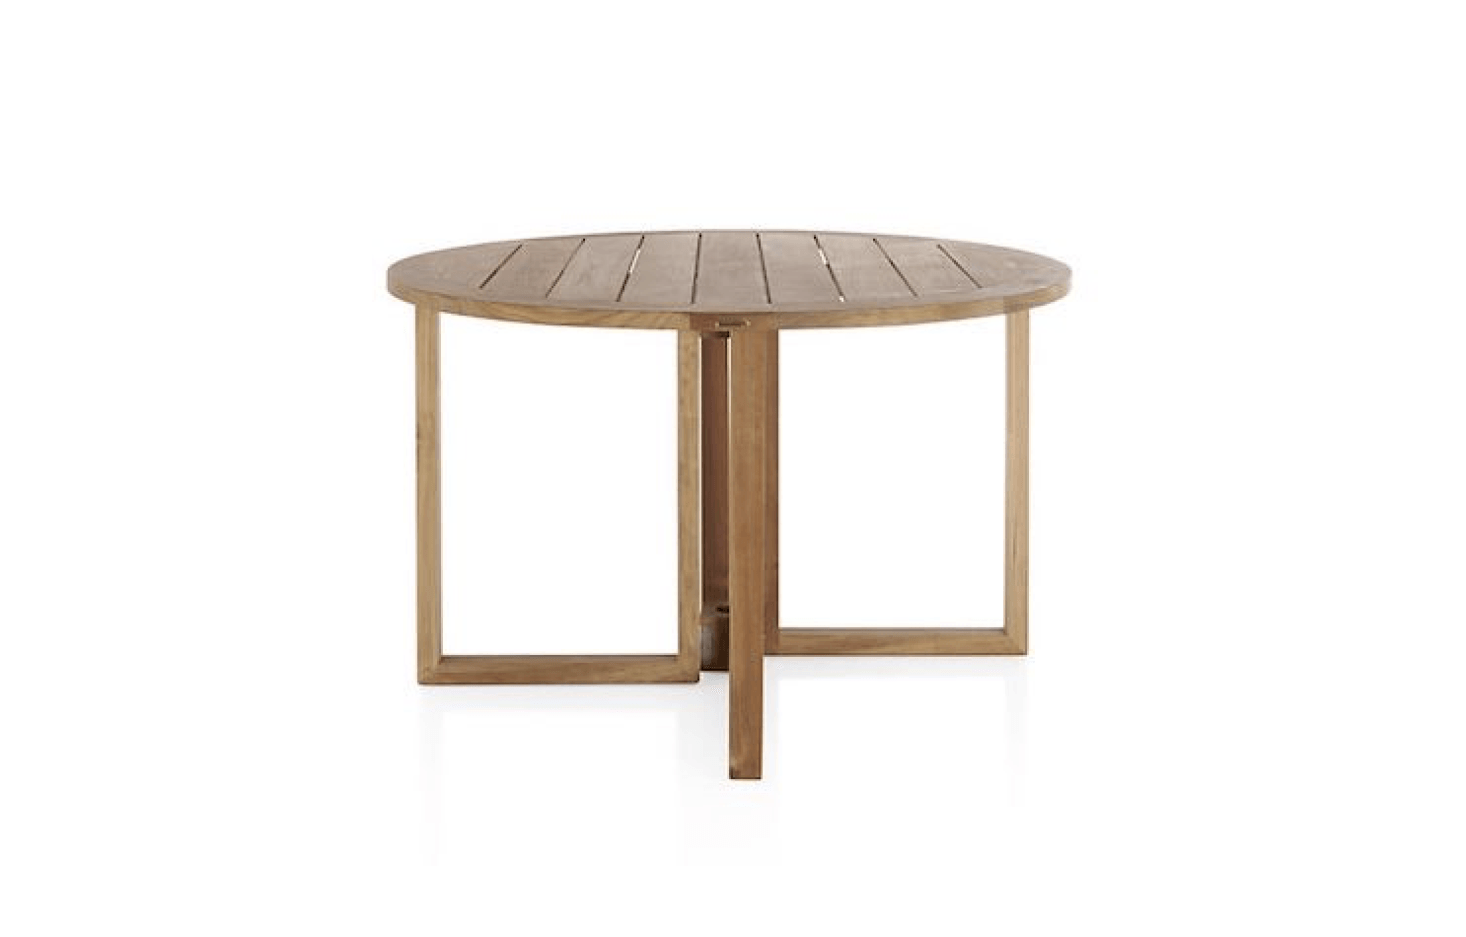 10 Easy Pieces Round Wood Dining Tables Gardenista Round Wood Dining Table Wood Dining Table Table